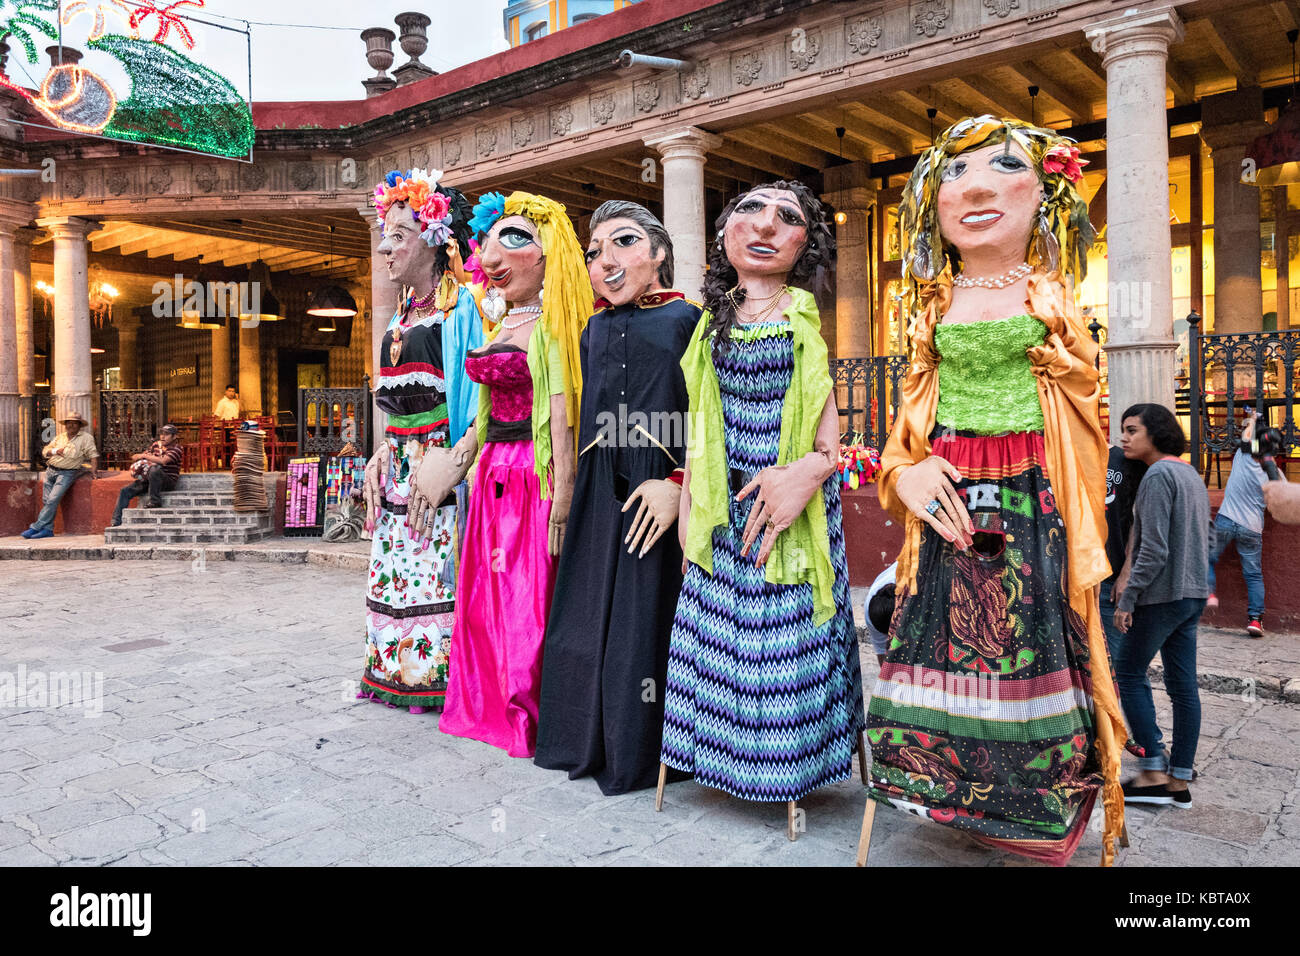 Giant paper-mache puppets called mojigangas line up for a parade during the week long fiesta of the patron saint - Stock Image